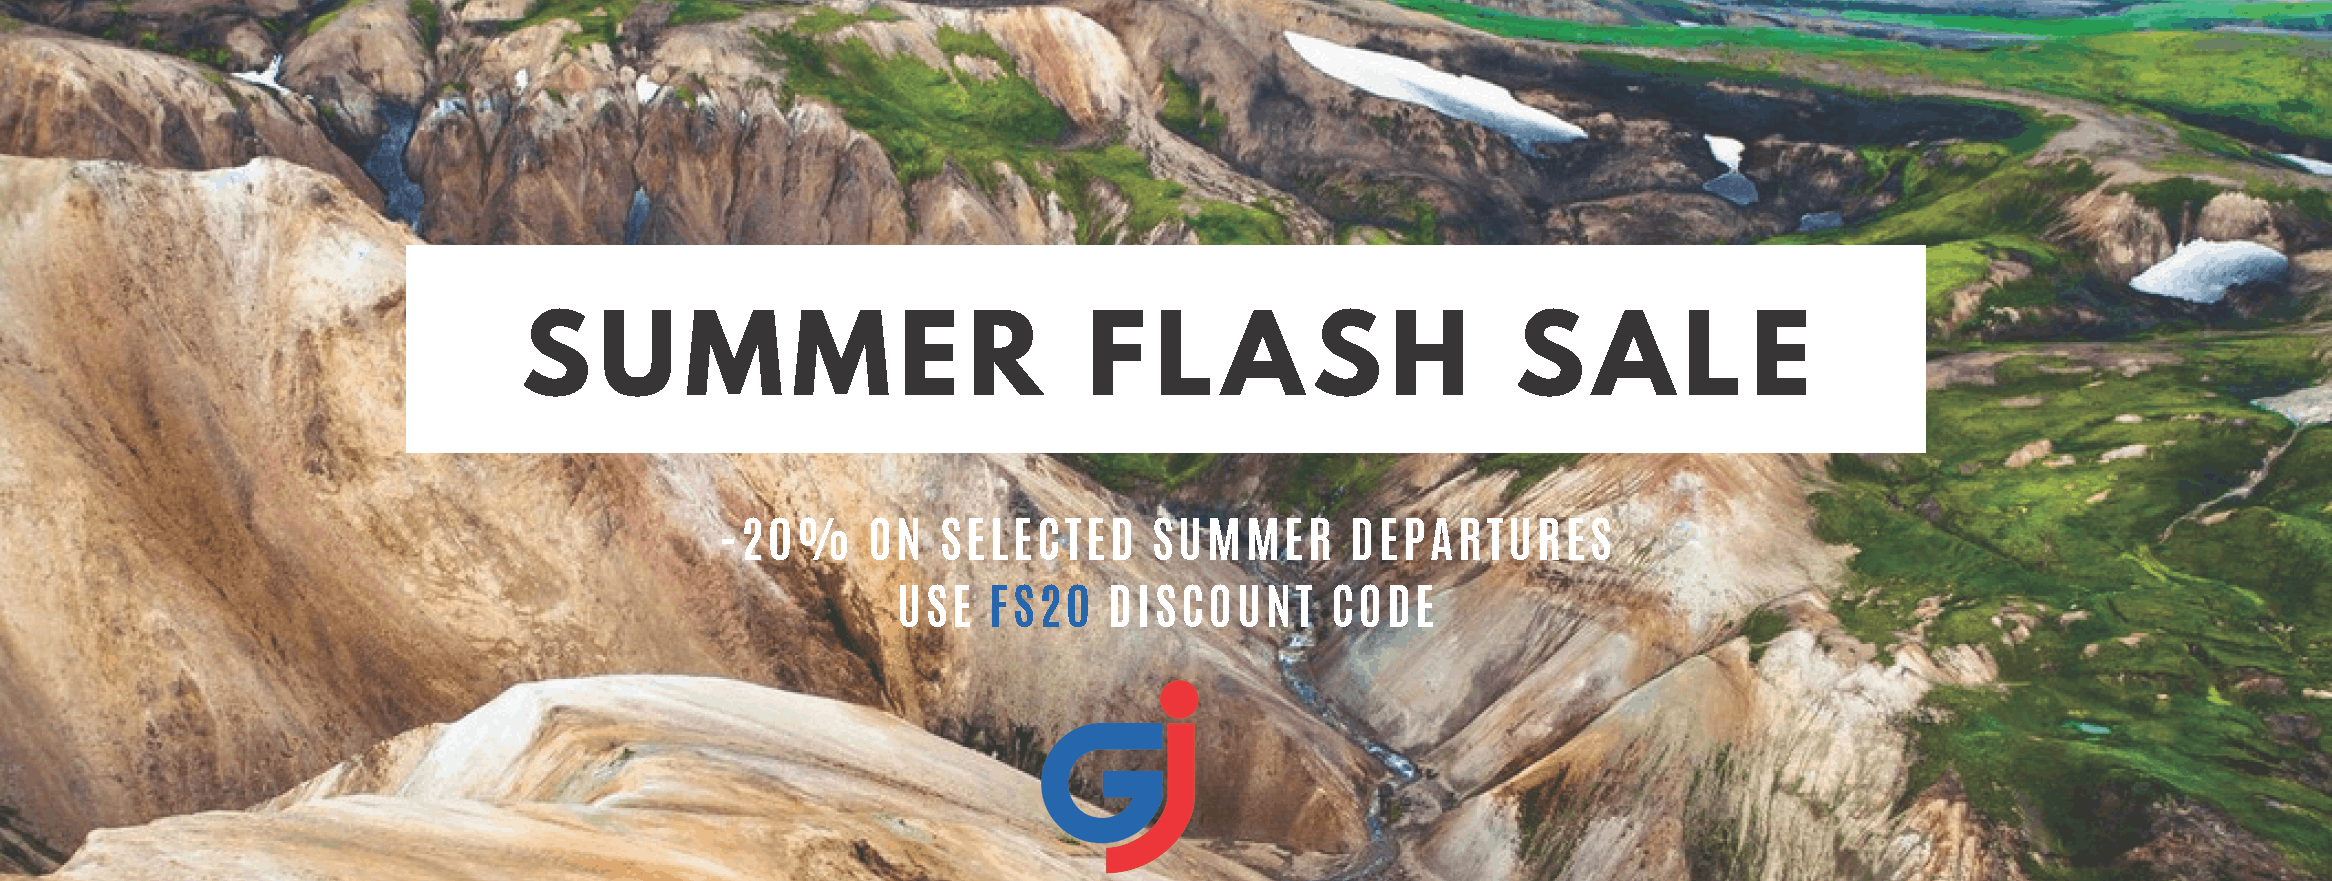 banners - Summer-flash-sale.png